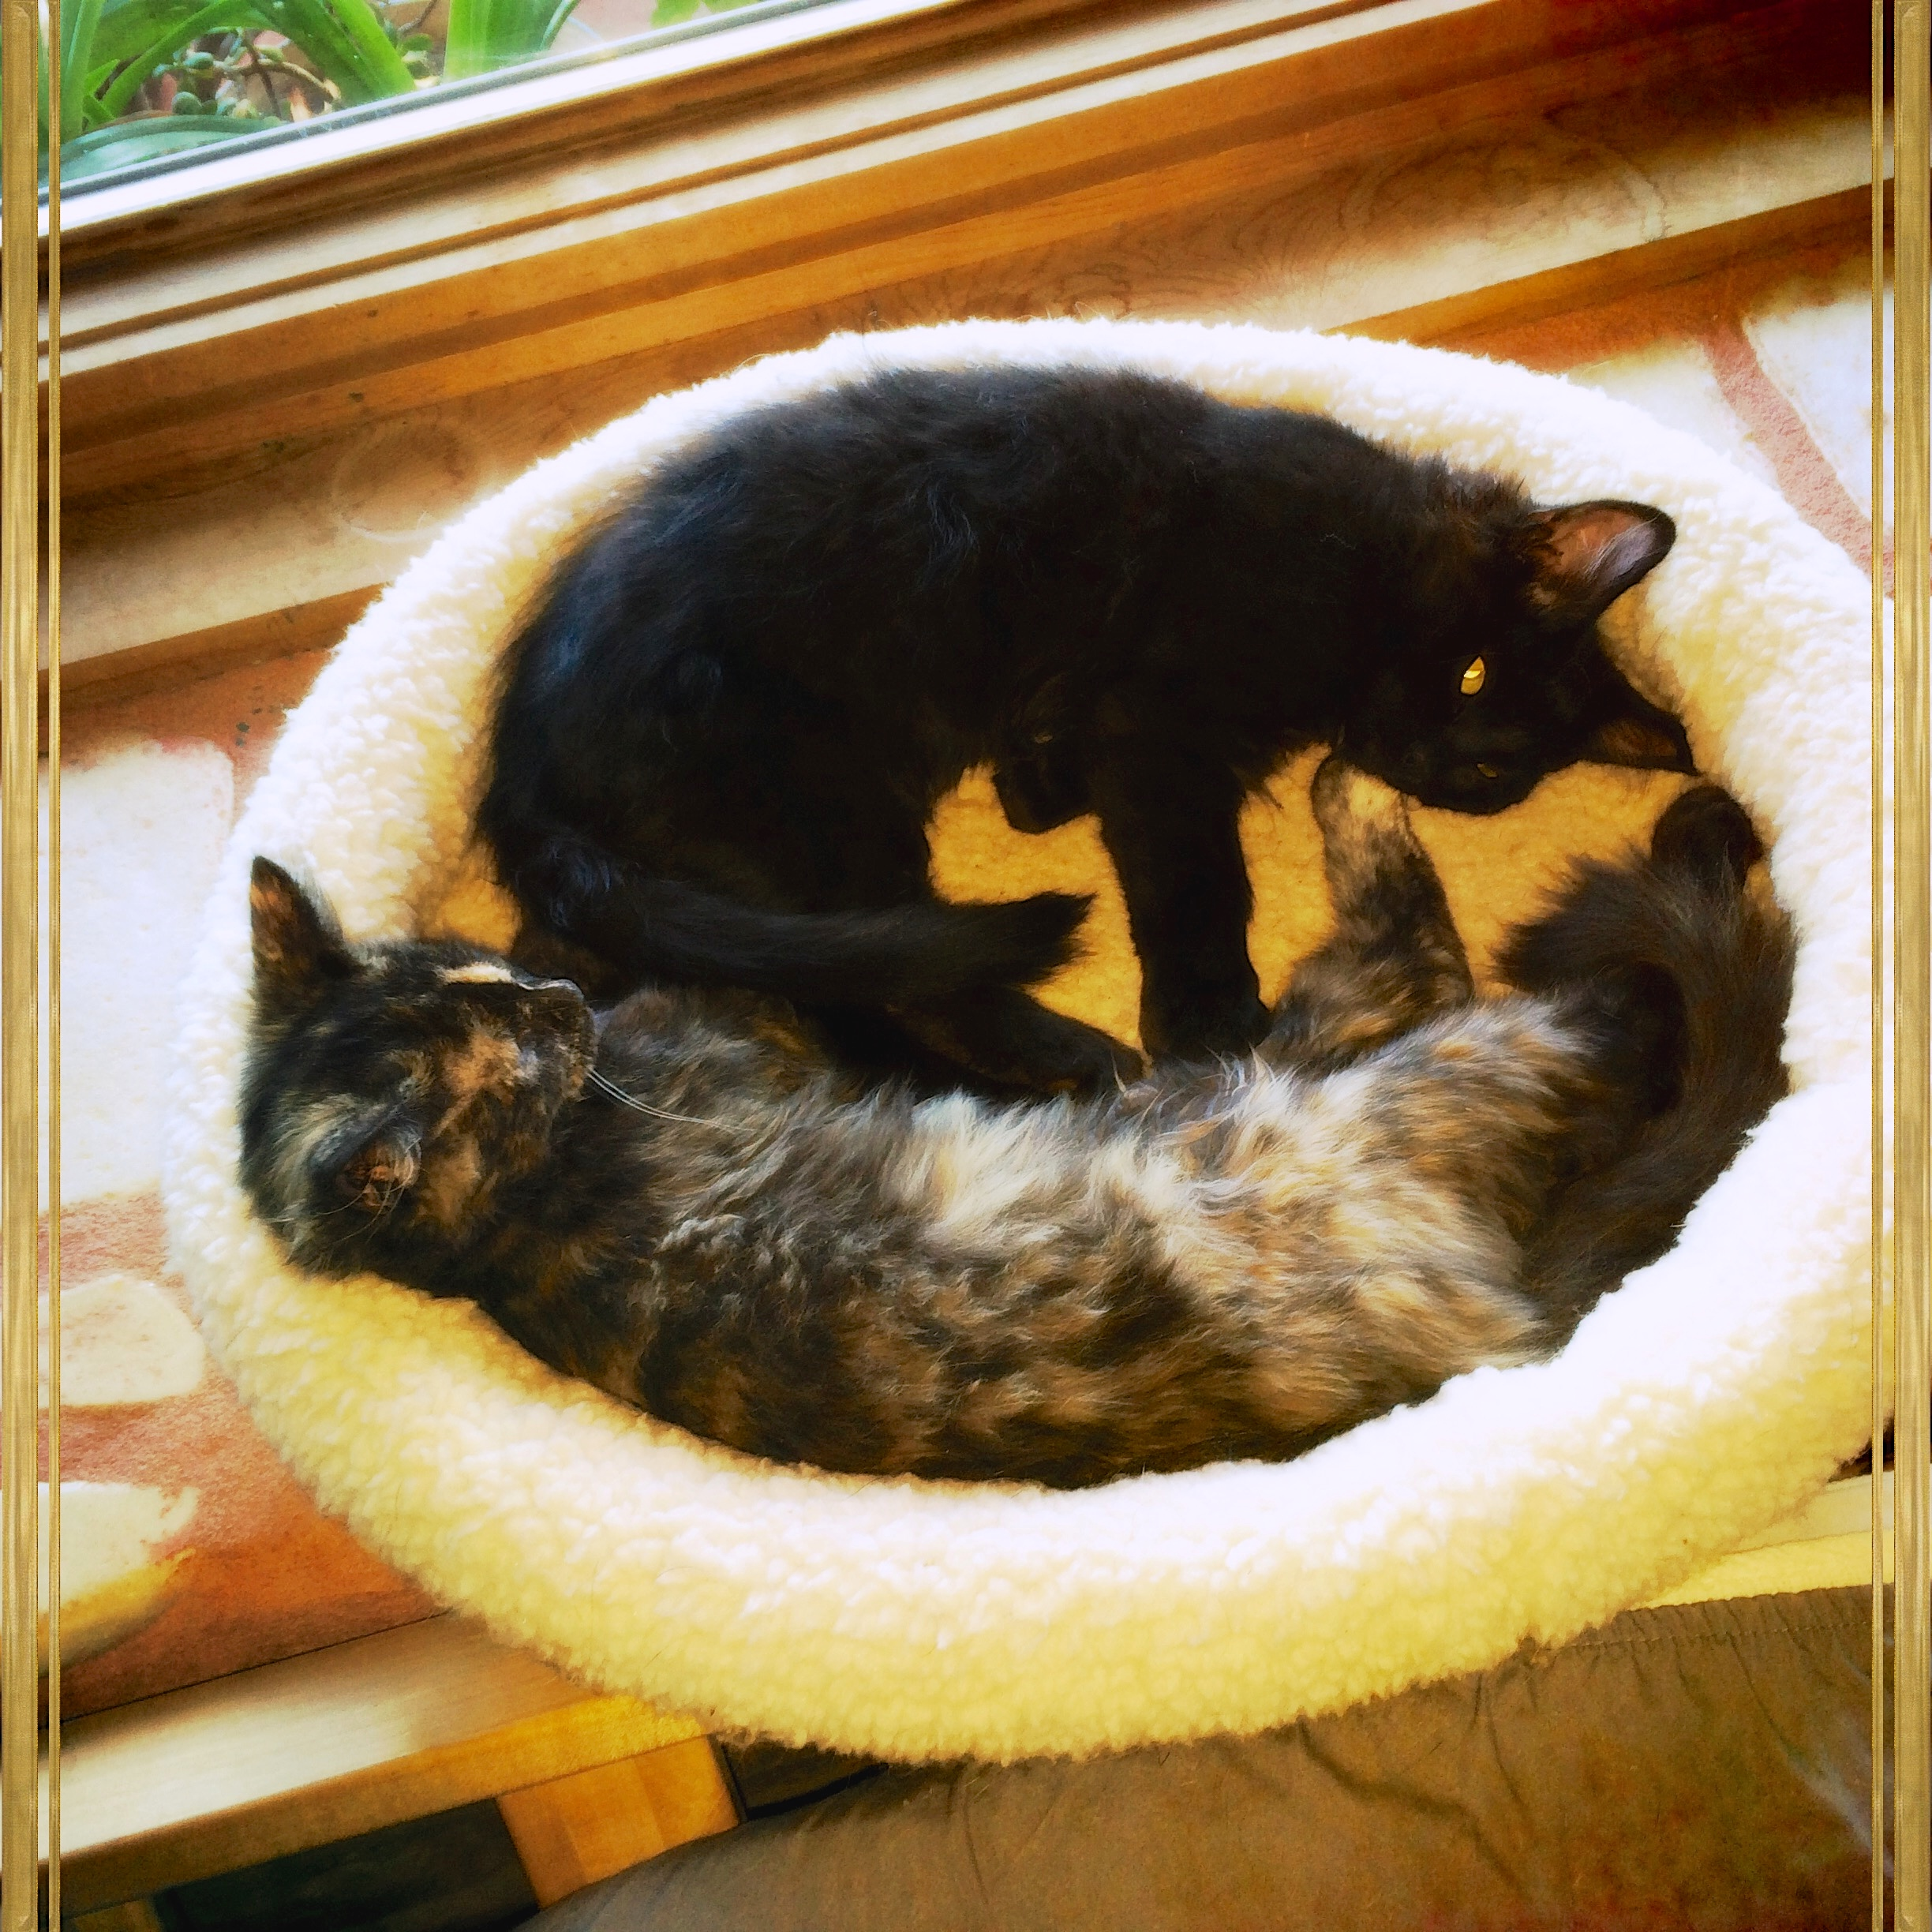 The kittens continue to make themselves at home, gradually extending their territory one windowsill at a time.